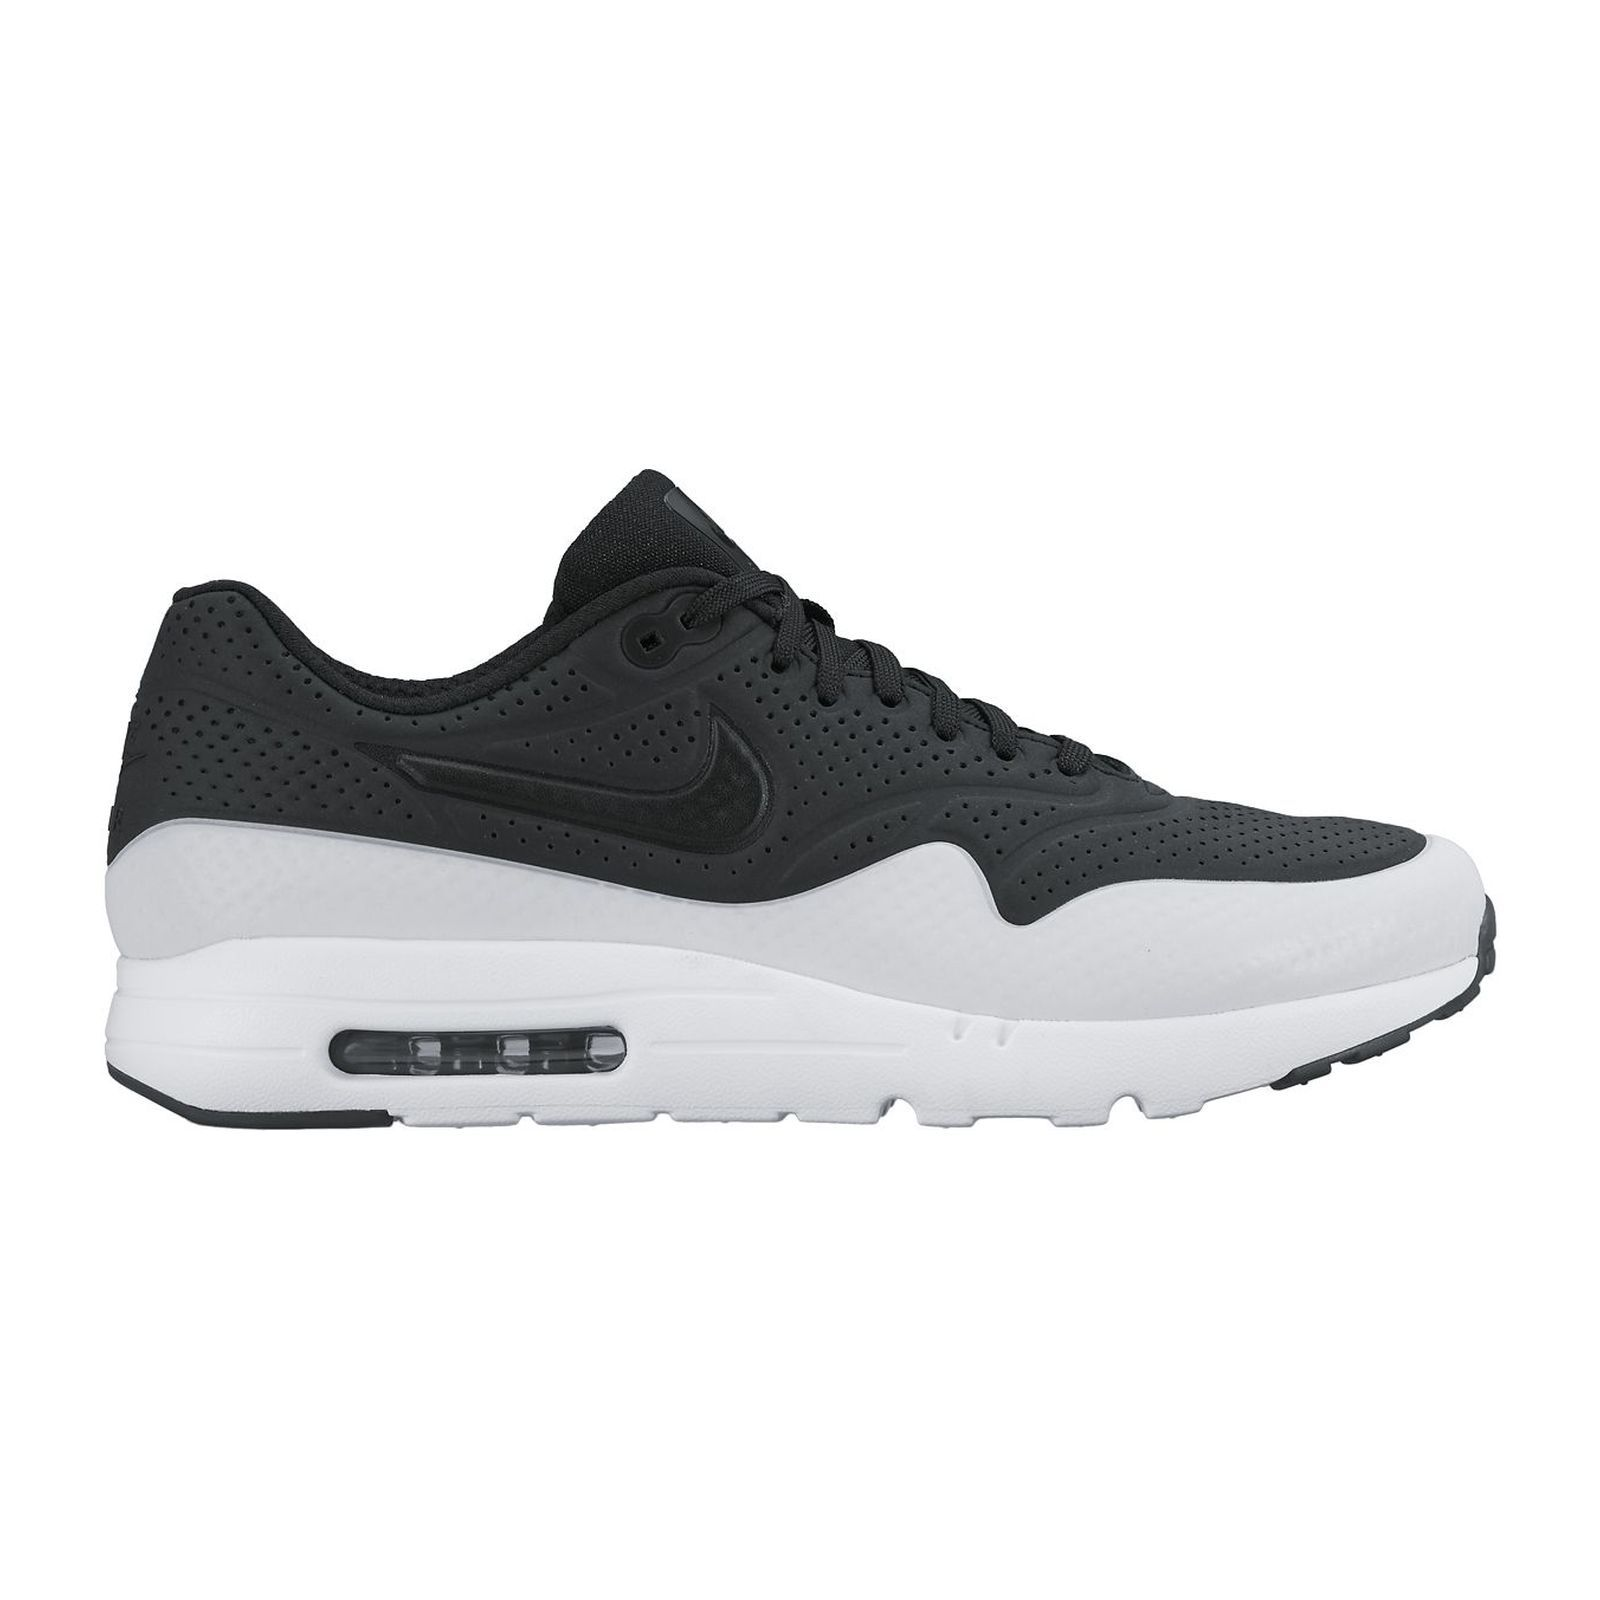 NIKE Air Max 1 ultra moire - Baskets Mode - noir